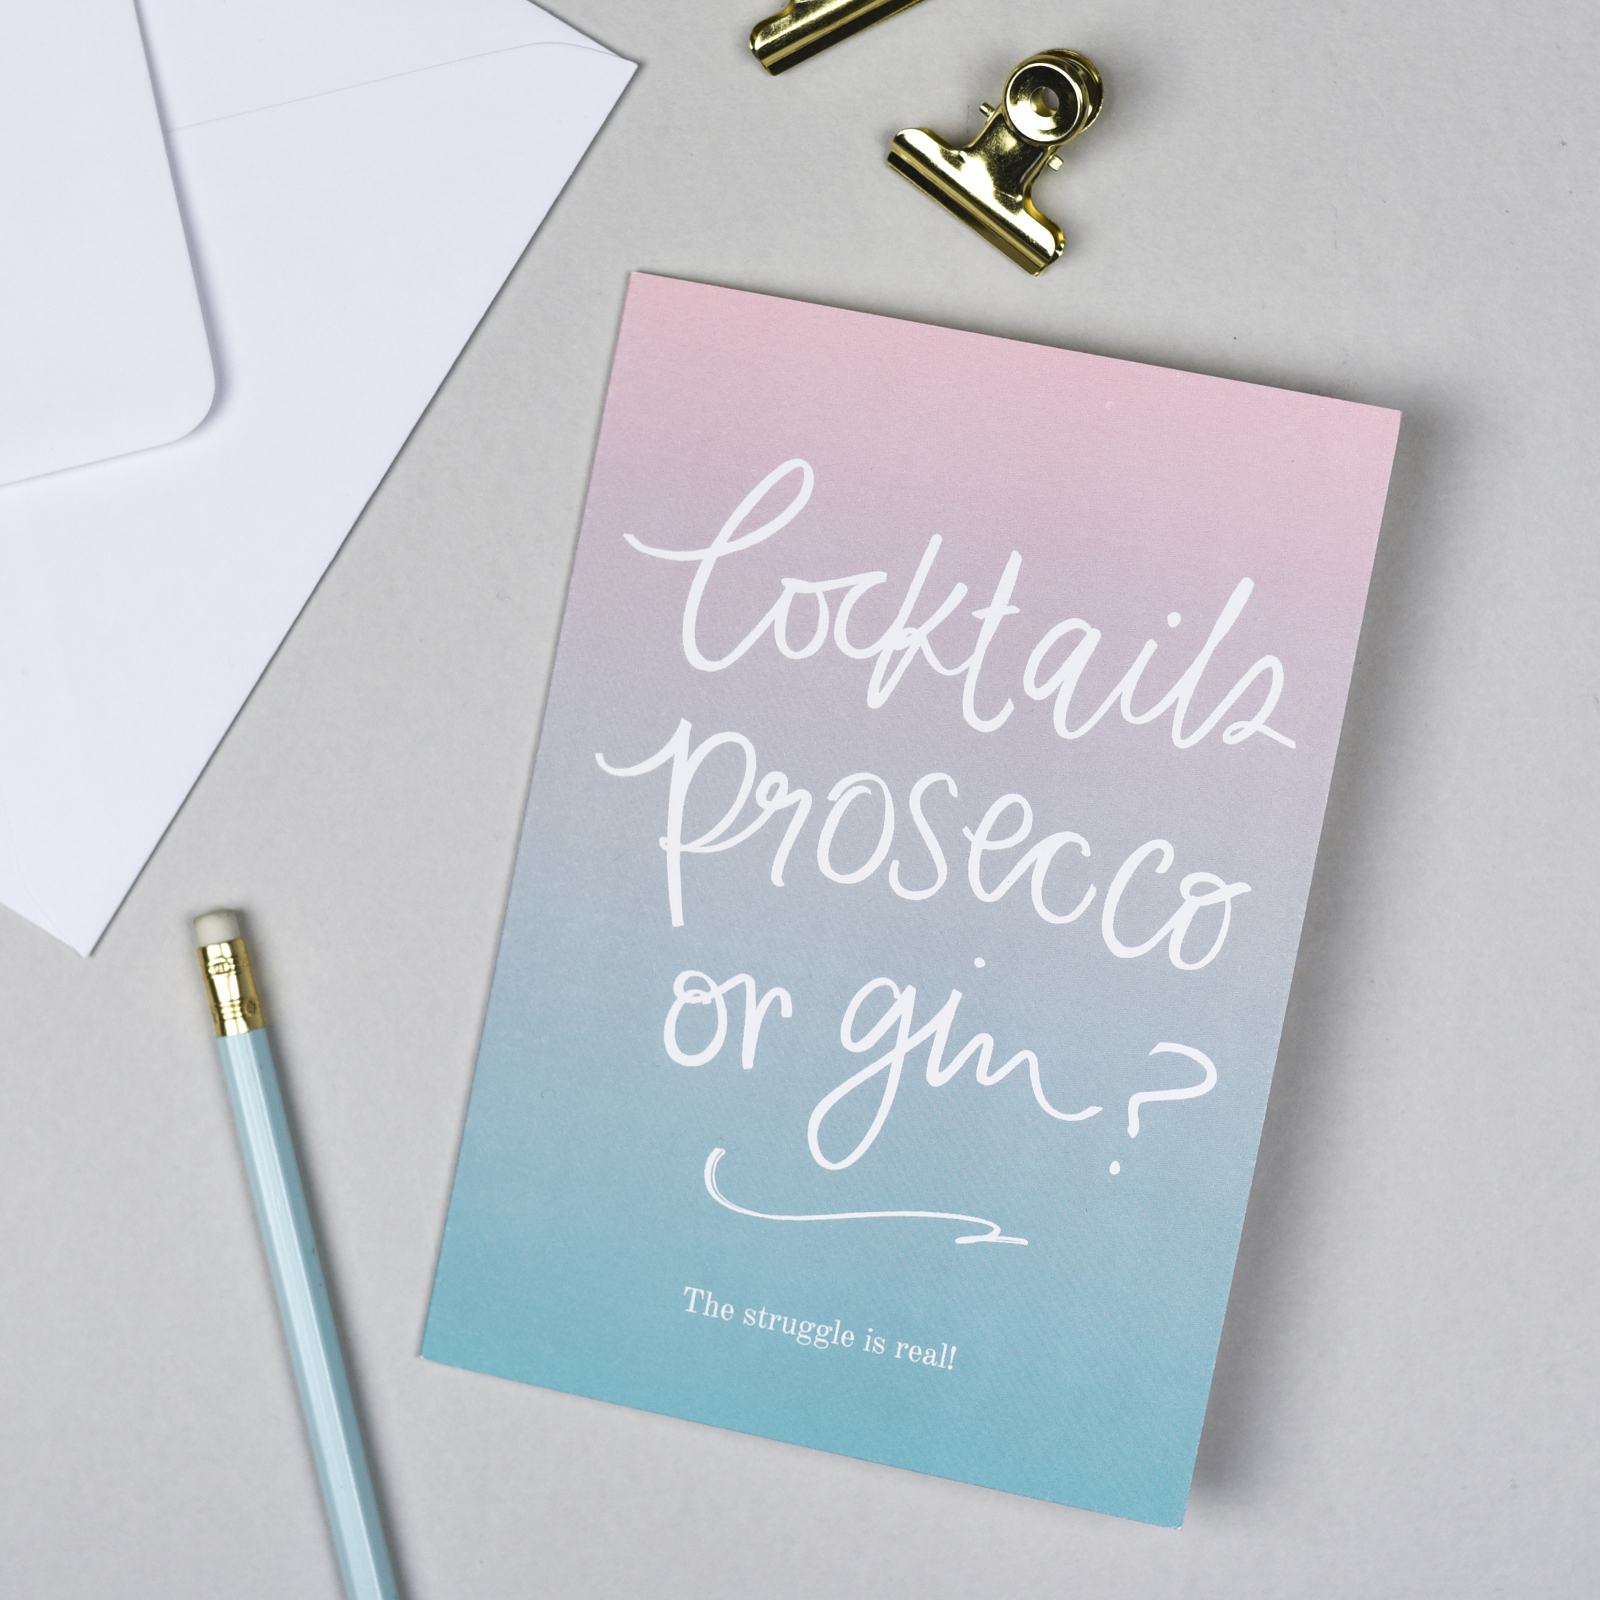 Cocktails, Prosecco or Gin Card